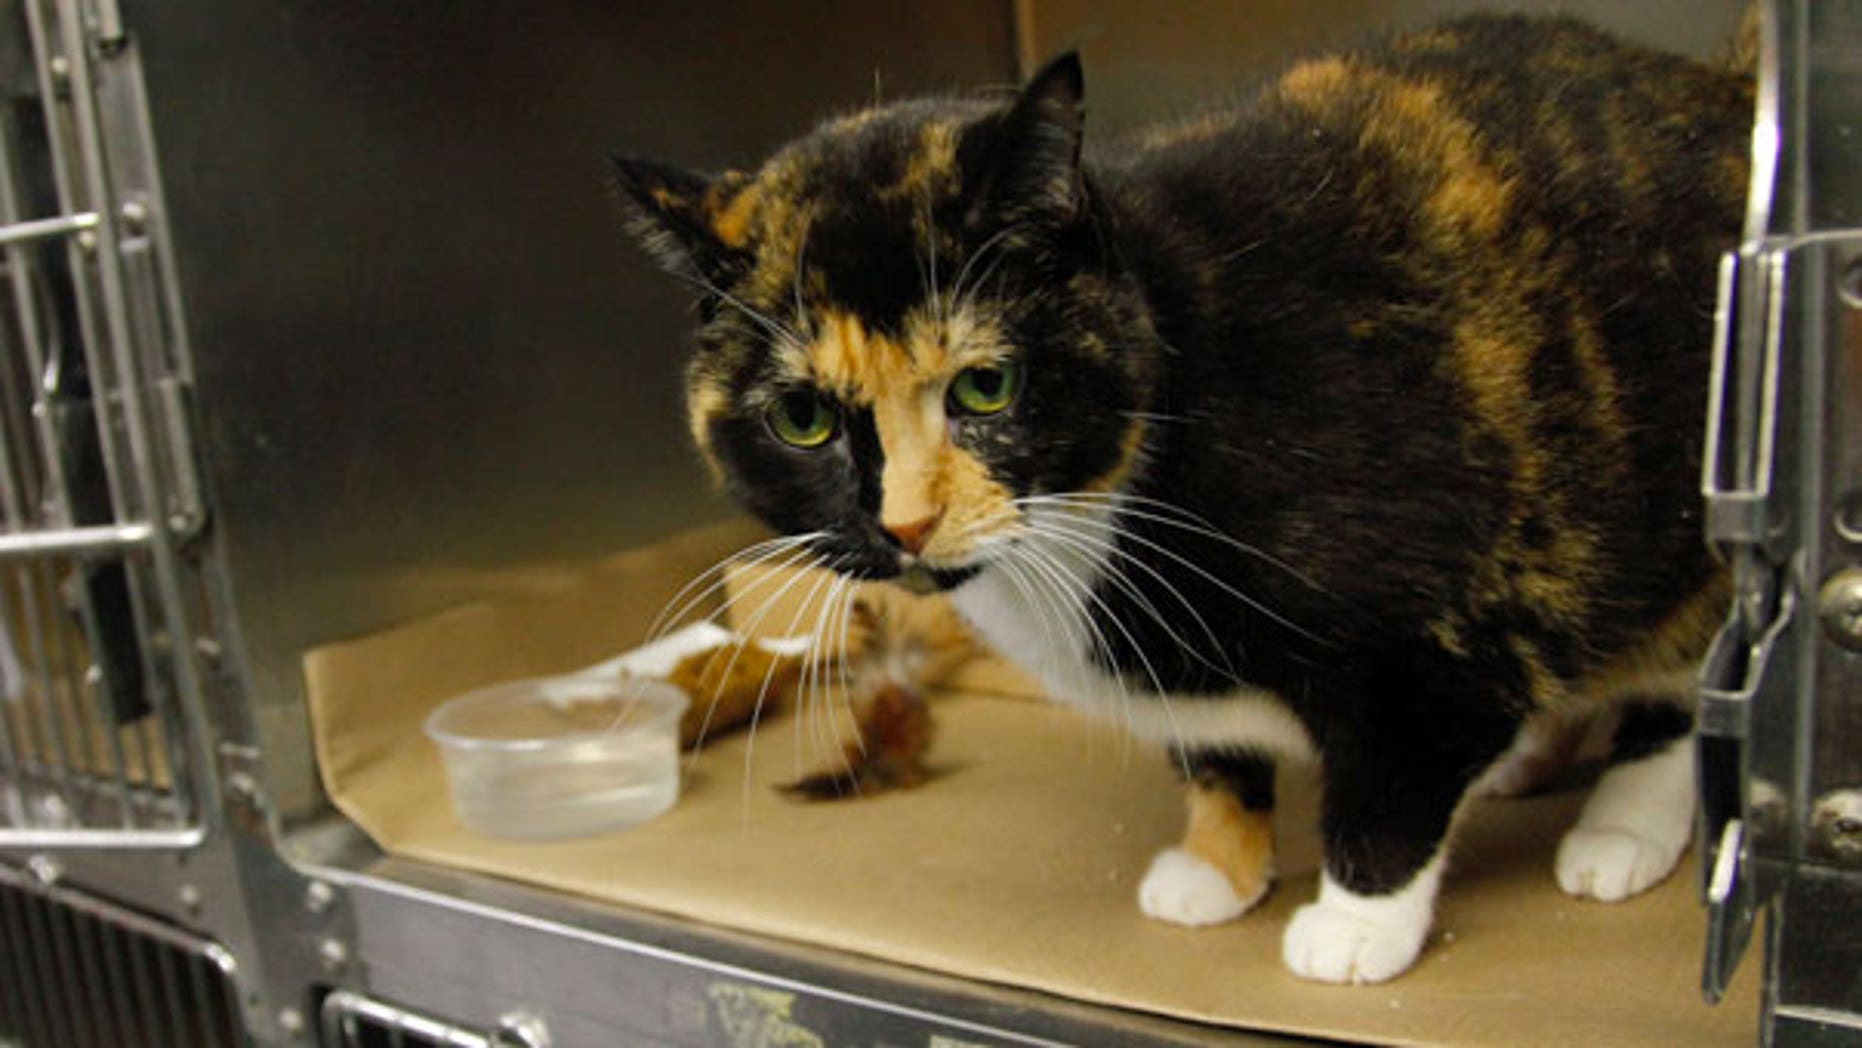 Sept. 14: Willow, a 6-year calico cat that went missing from her Colorado home during a renovation 5 years ago, sits in a cage at her temporary home in New York's Animal Care and Control (ACC) facility.